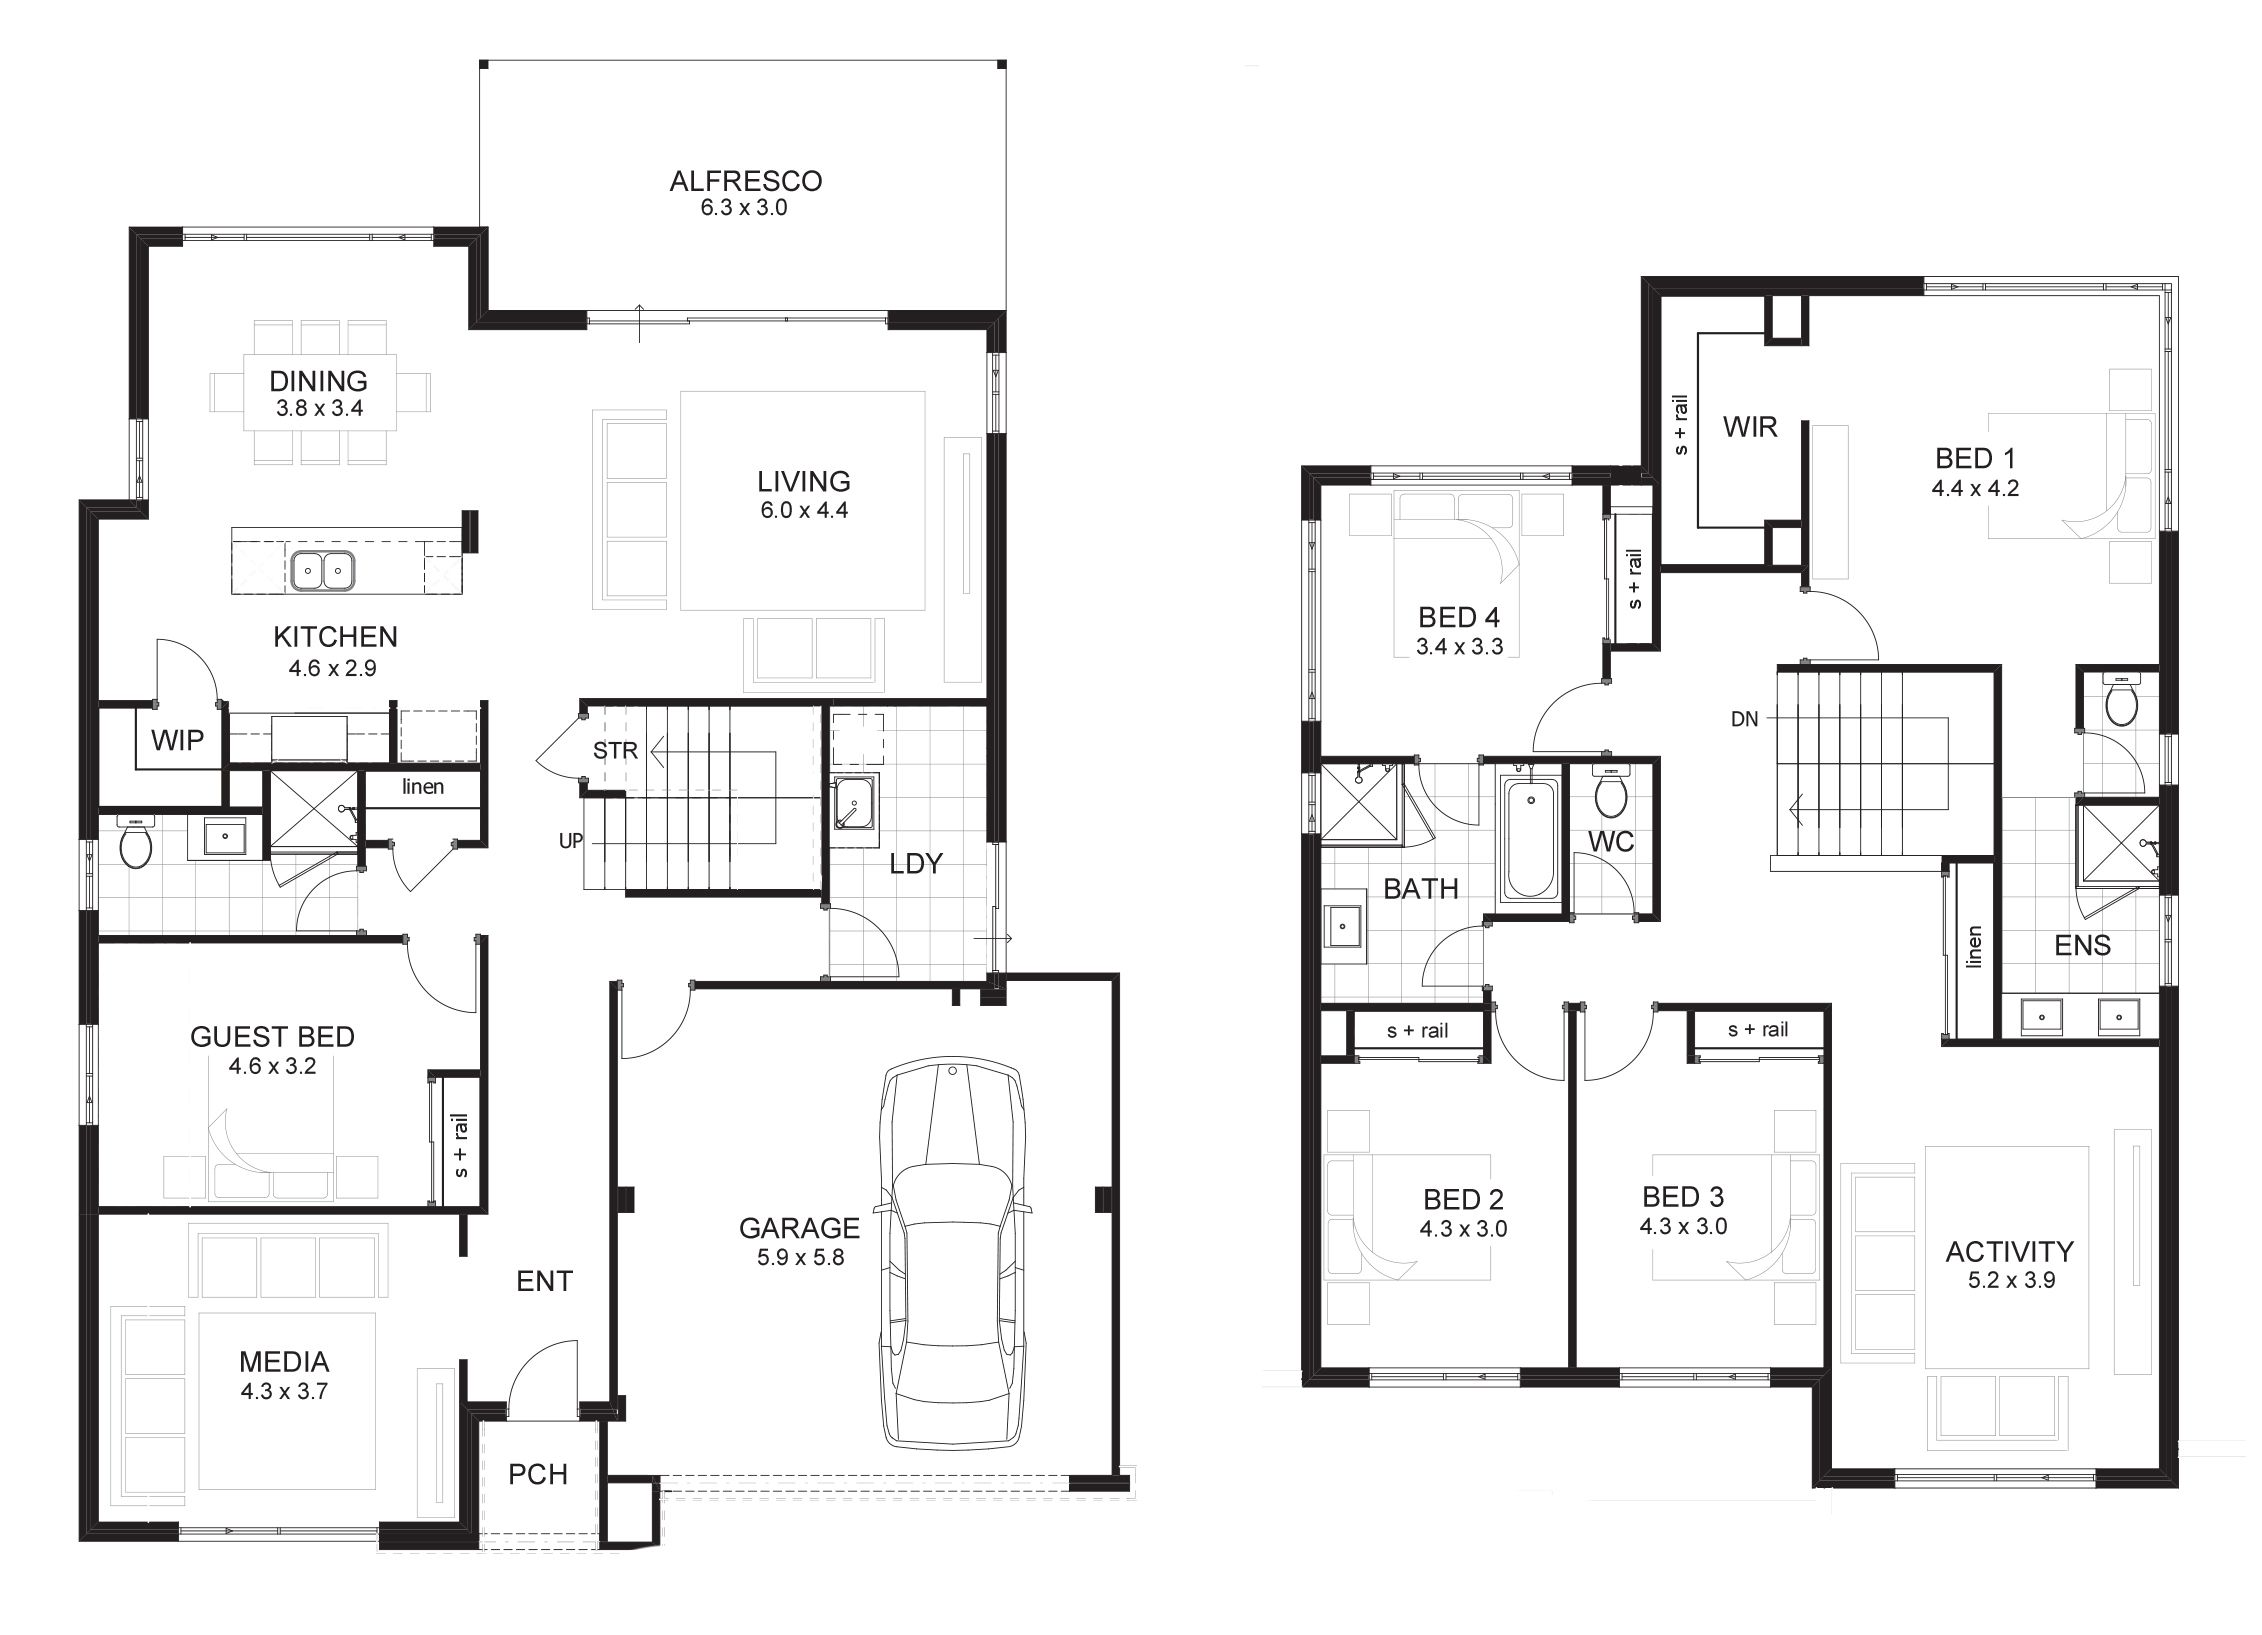 2 storey house designs and floor plans google search Free house floor plan designer